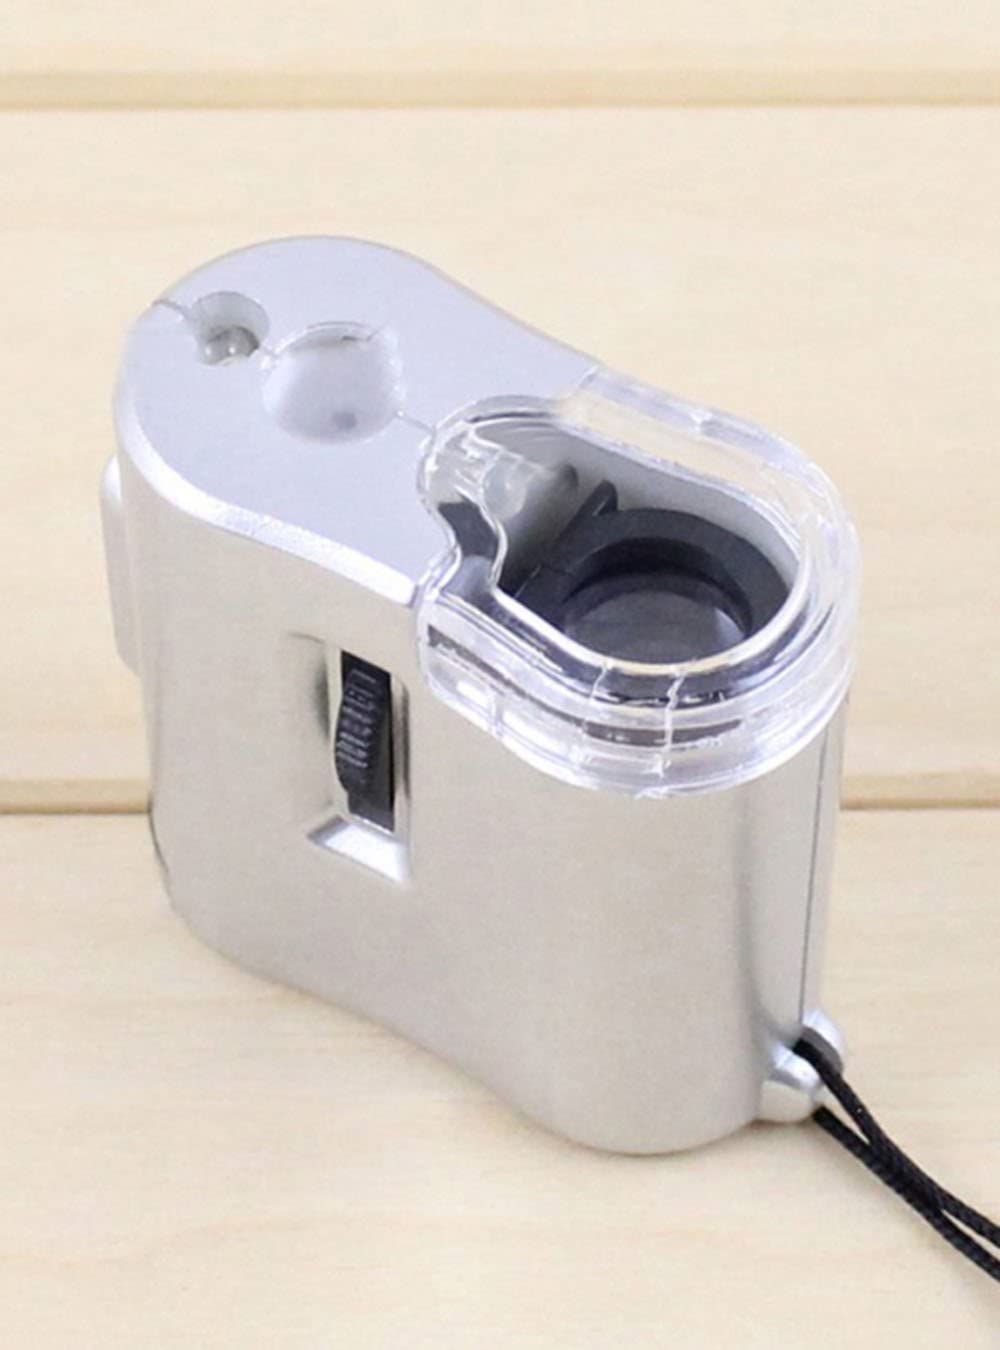 Color:Silver NIEGIENNA-60X Pocket Microscope pro Tools Mini Jewelry Loupe Magnifier Loop Jeweler with LED UV Light